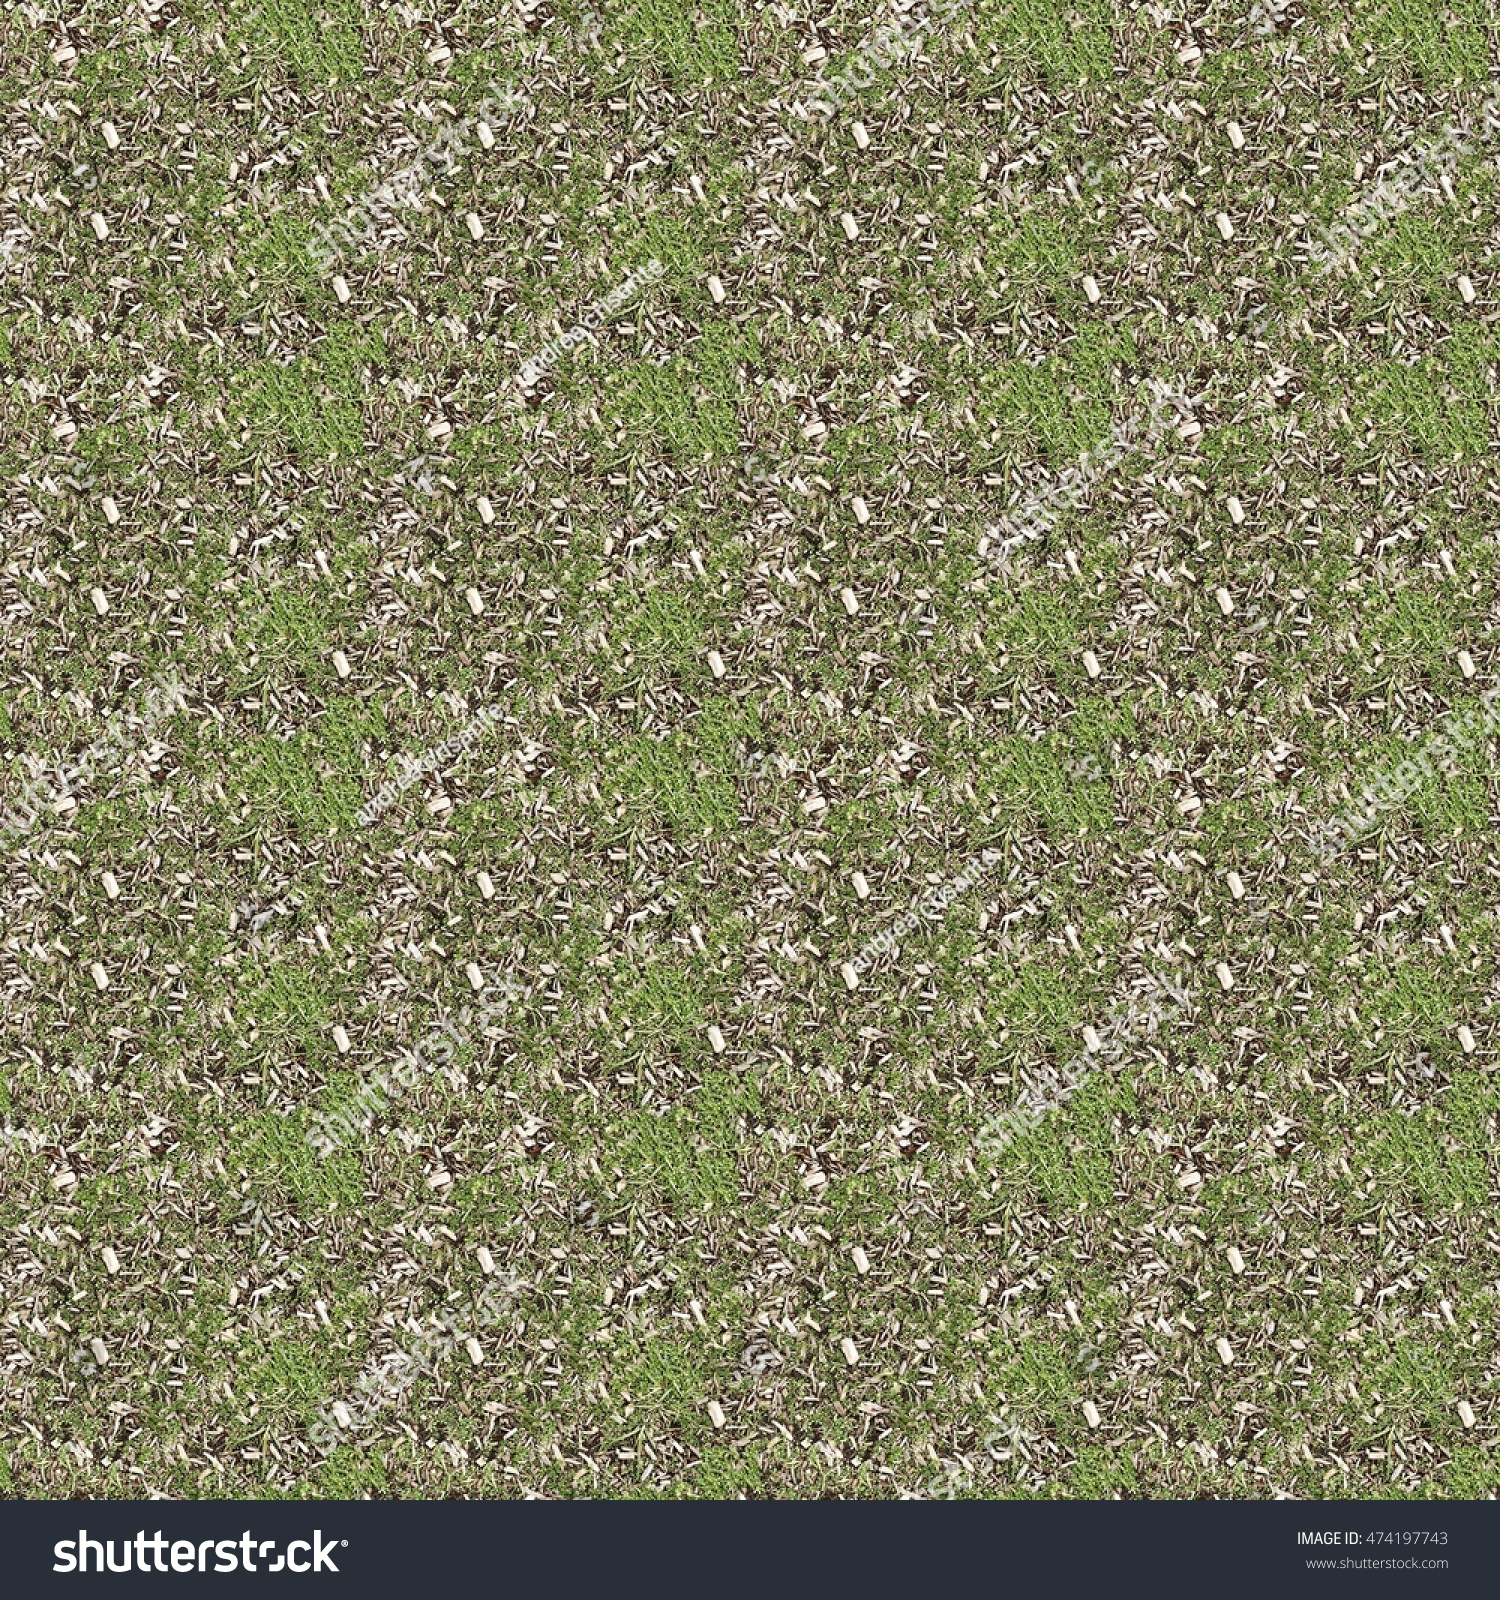 grass texture seamless painted 3d illustration of seamless grass texture illustration seamless grass texture stock 474197743